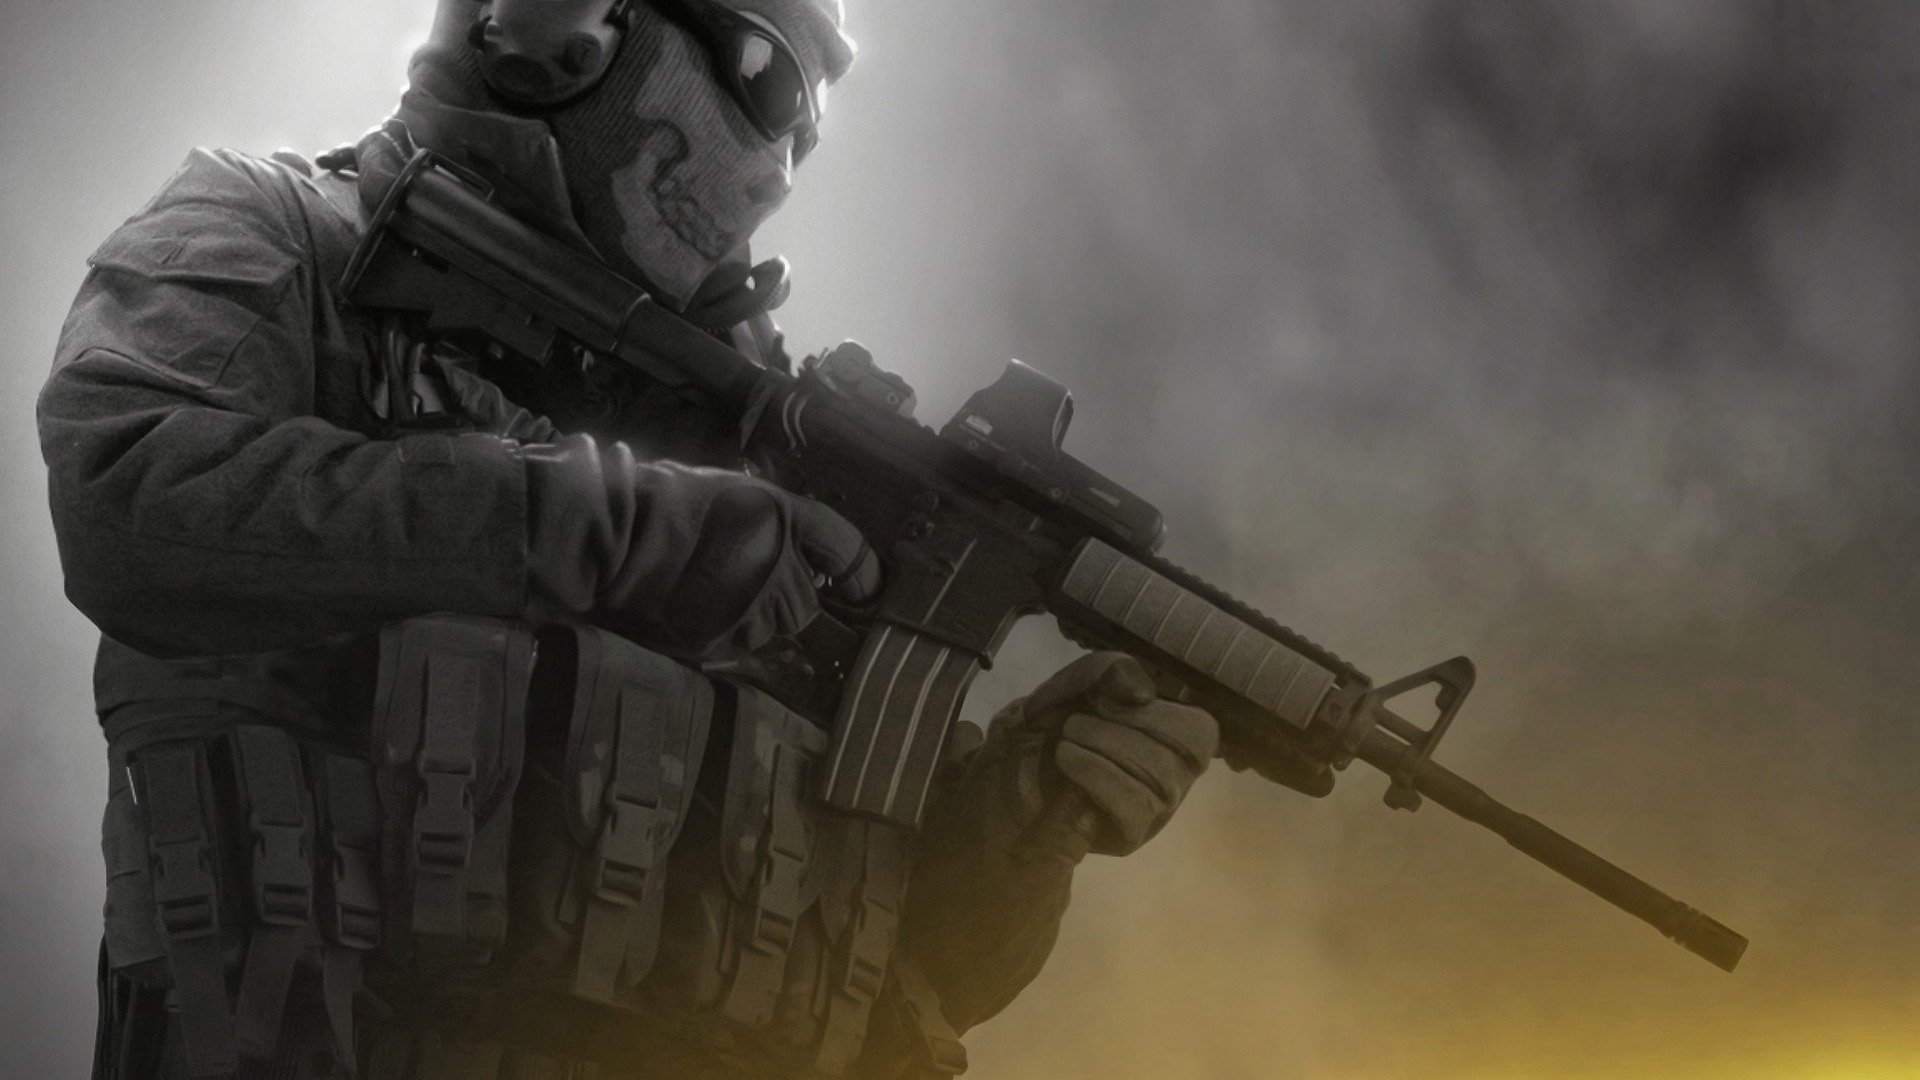 72 Mw2 Wallpaper Hd On Wallpapersafari